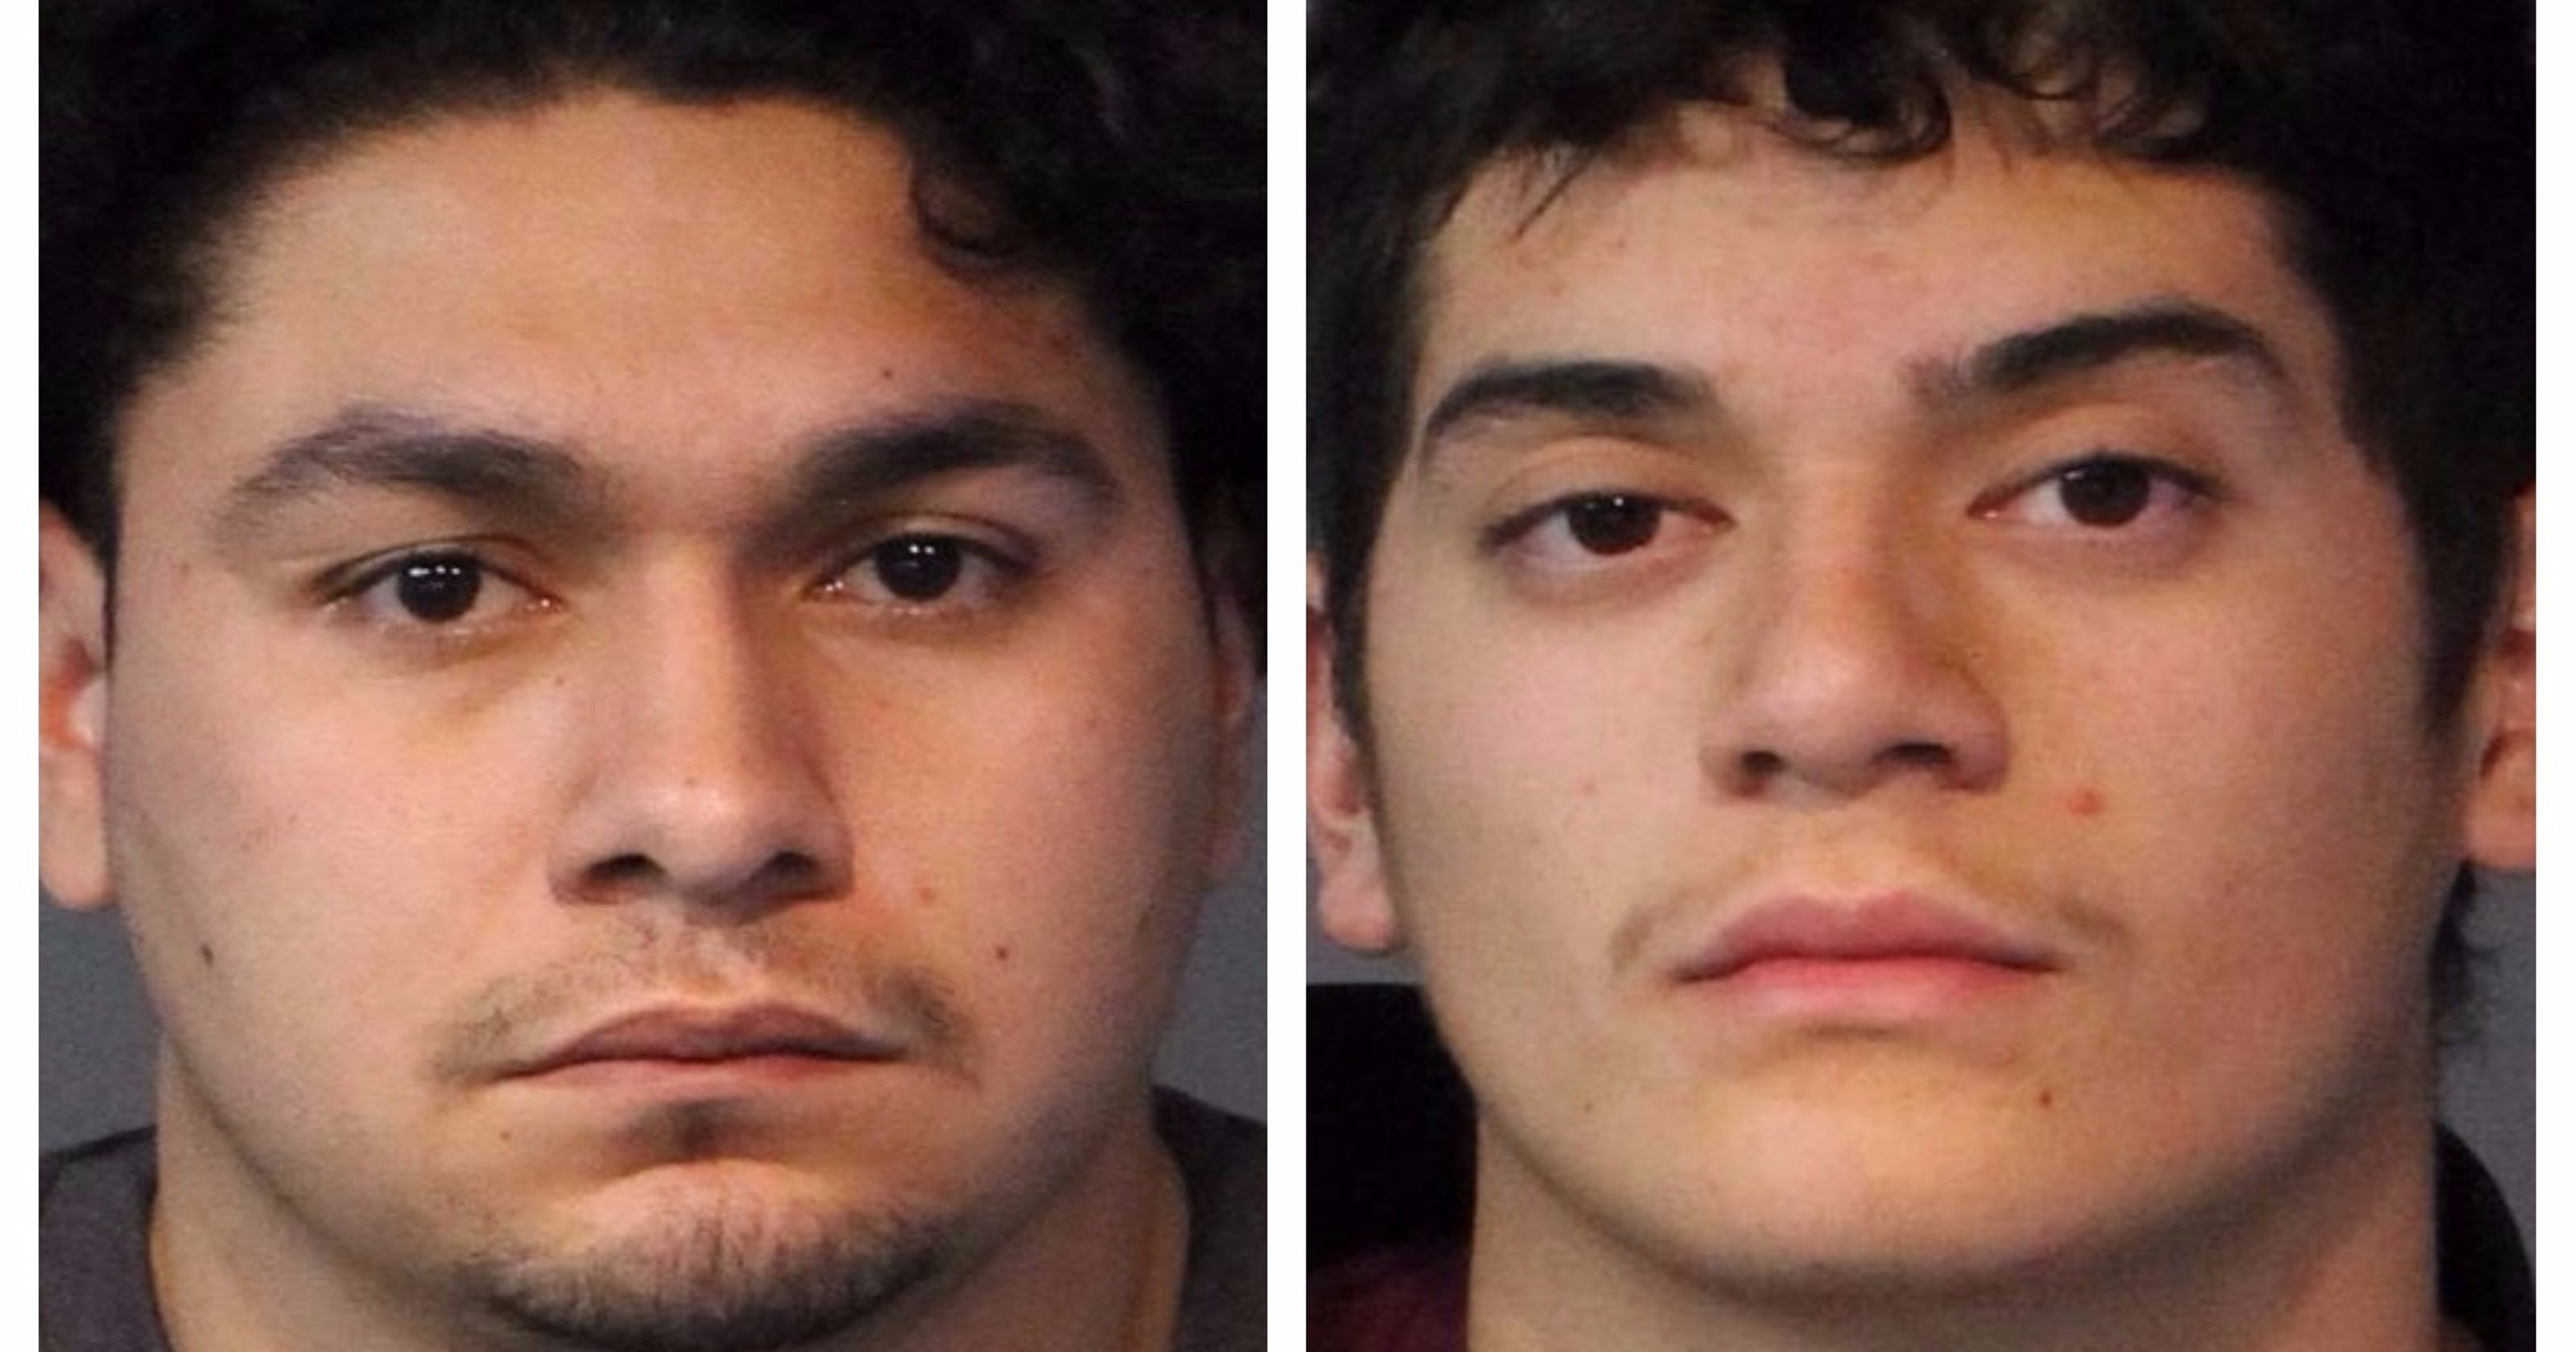 Reno police arrest 2 men on murder charges for parking lot